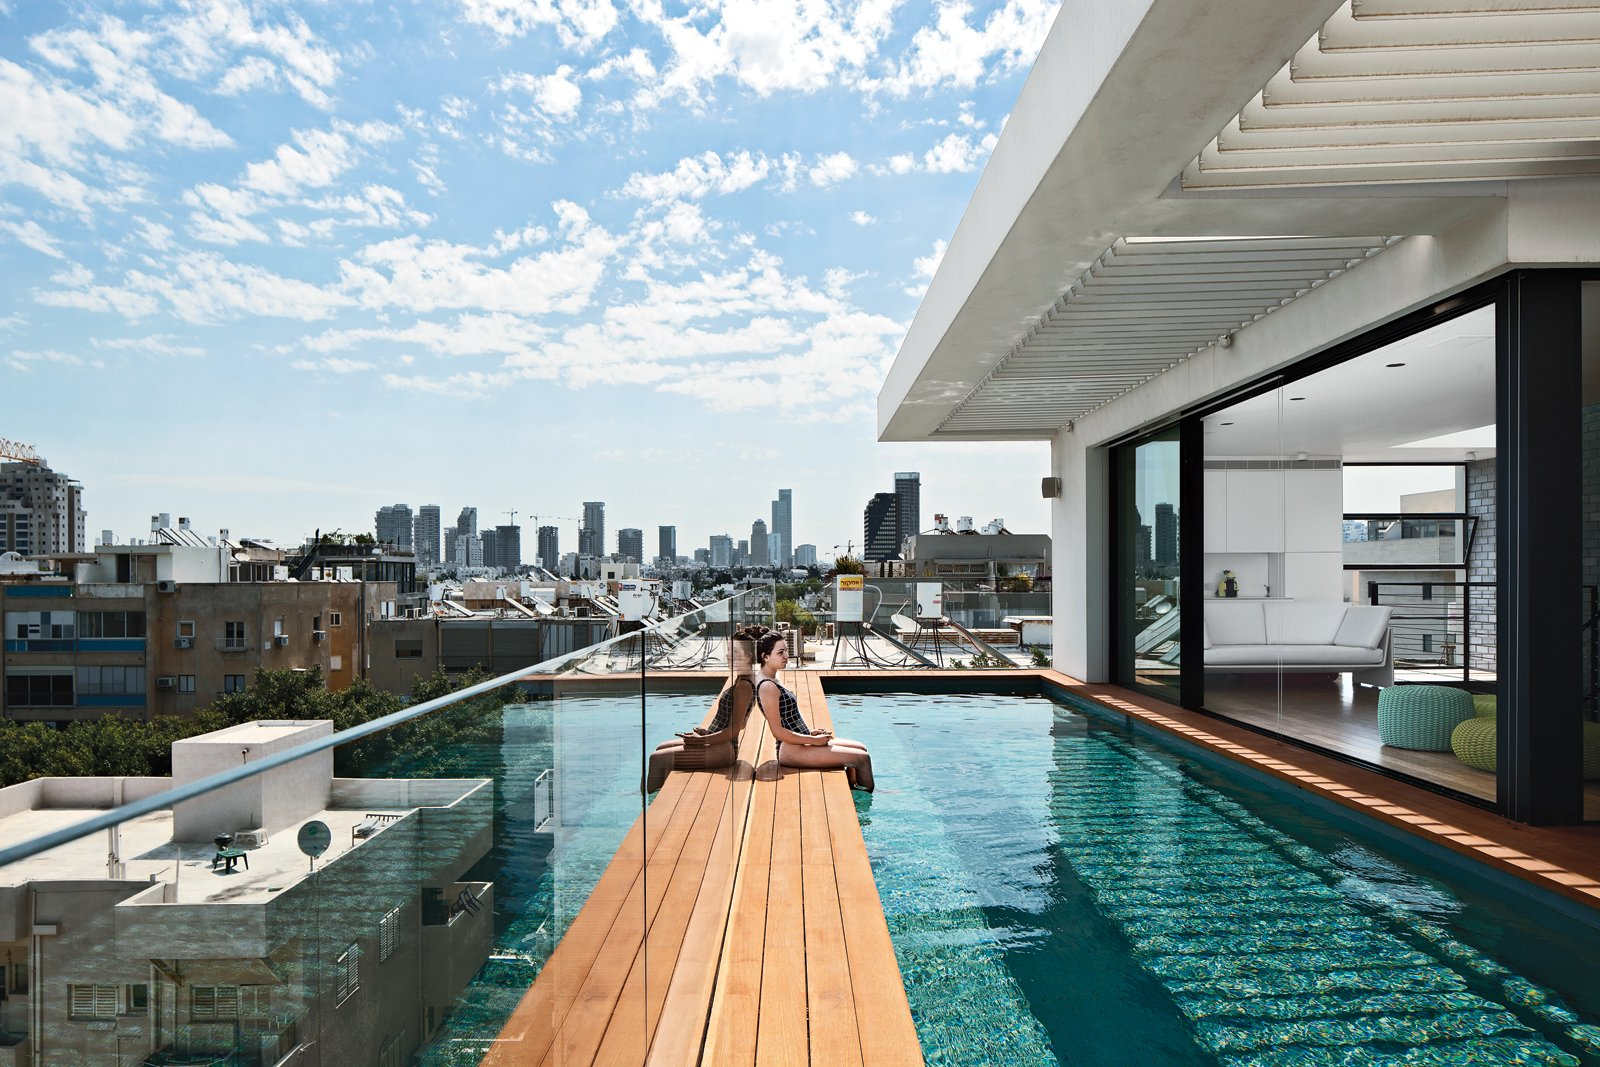 """Outdoor, Wood Patio, Porch, Deck, Small Patio, Porch, Deck, Swimming Pools, Tubs, Shower, Lap Pools, Tubs, Shower, Large Pools, Tubs, Shower, and Rooftop """"Tel Aviv is different from the rest of Israel. This is one of the most modern cities in the world."""" —Architect Pitsou Kedem  Top 10 Houses on Dwell This Week November 21, 2013 by Jami Smith from Modern High-Rise Town House in Tel Aviv"""